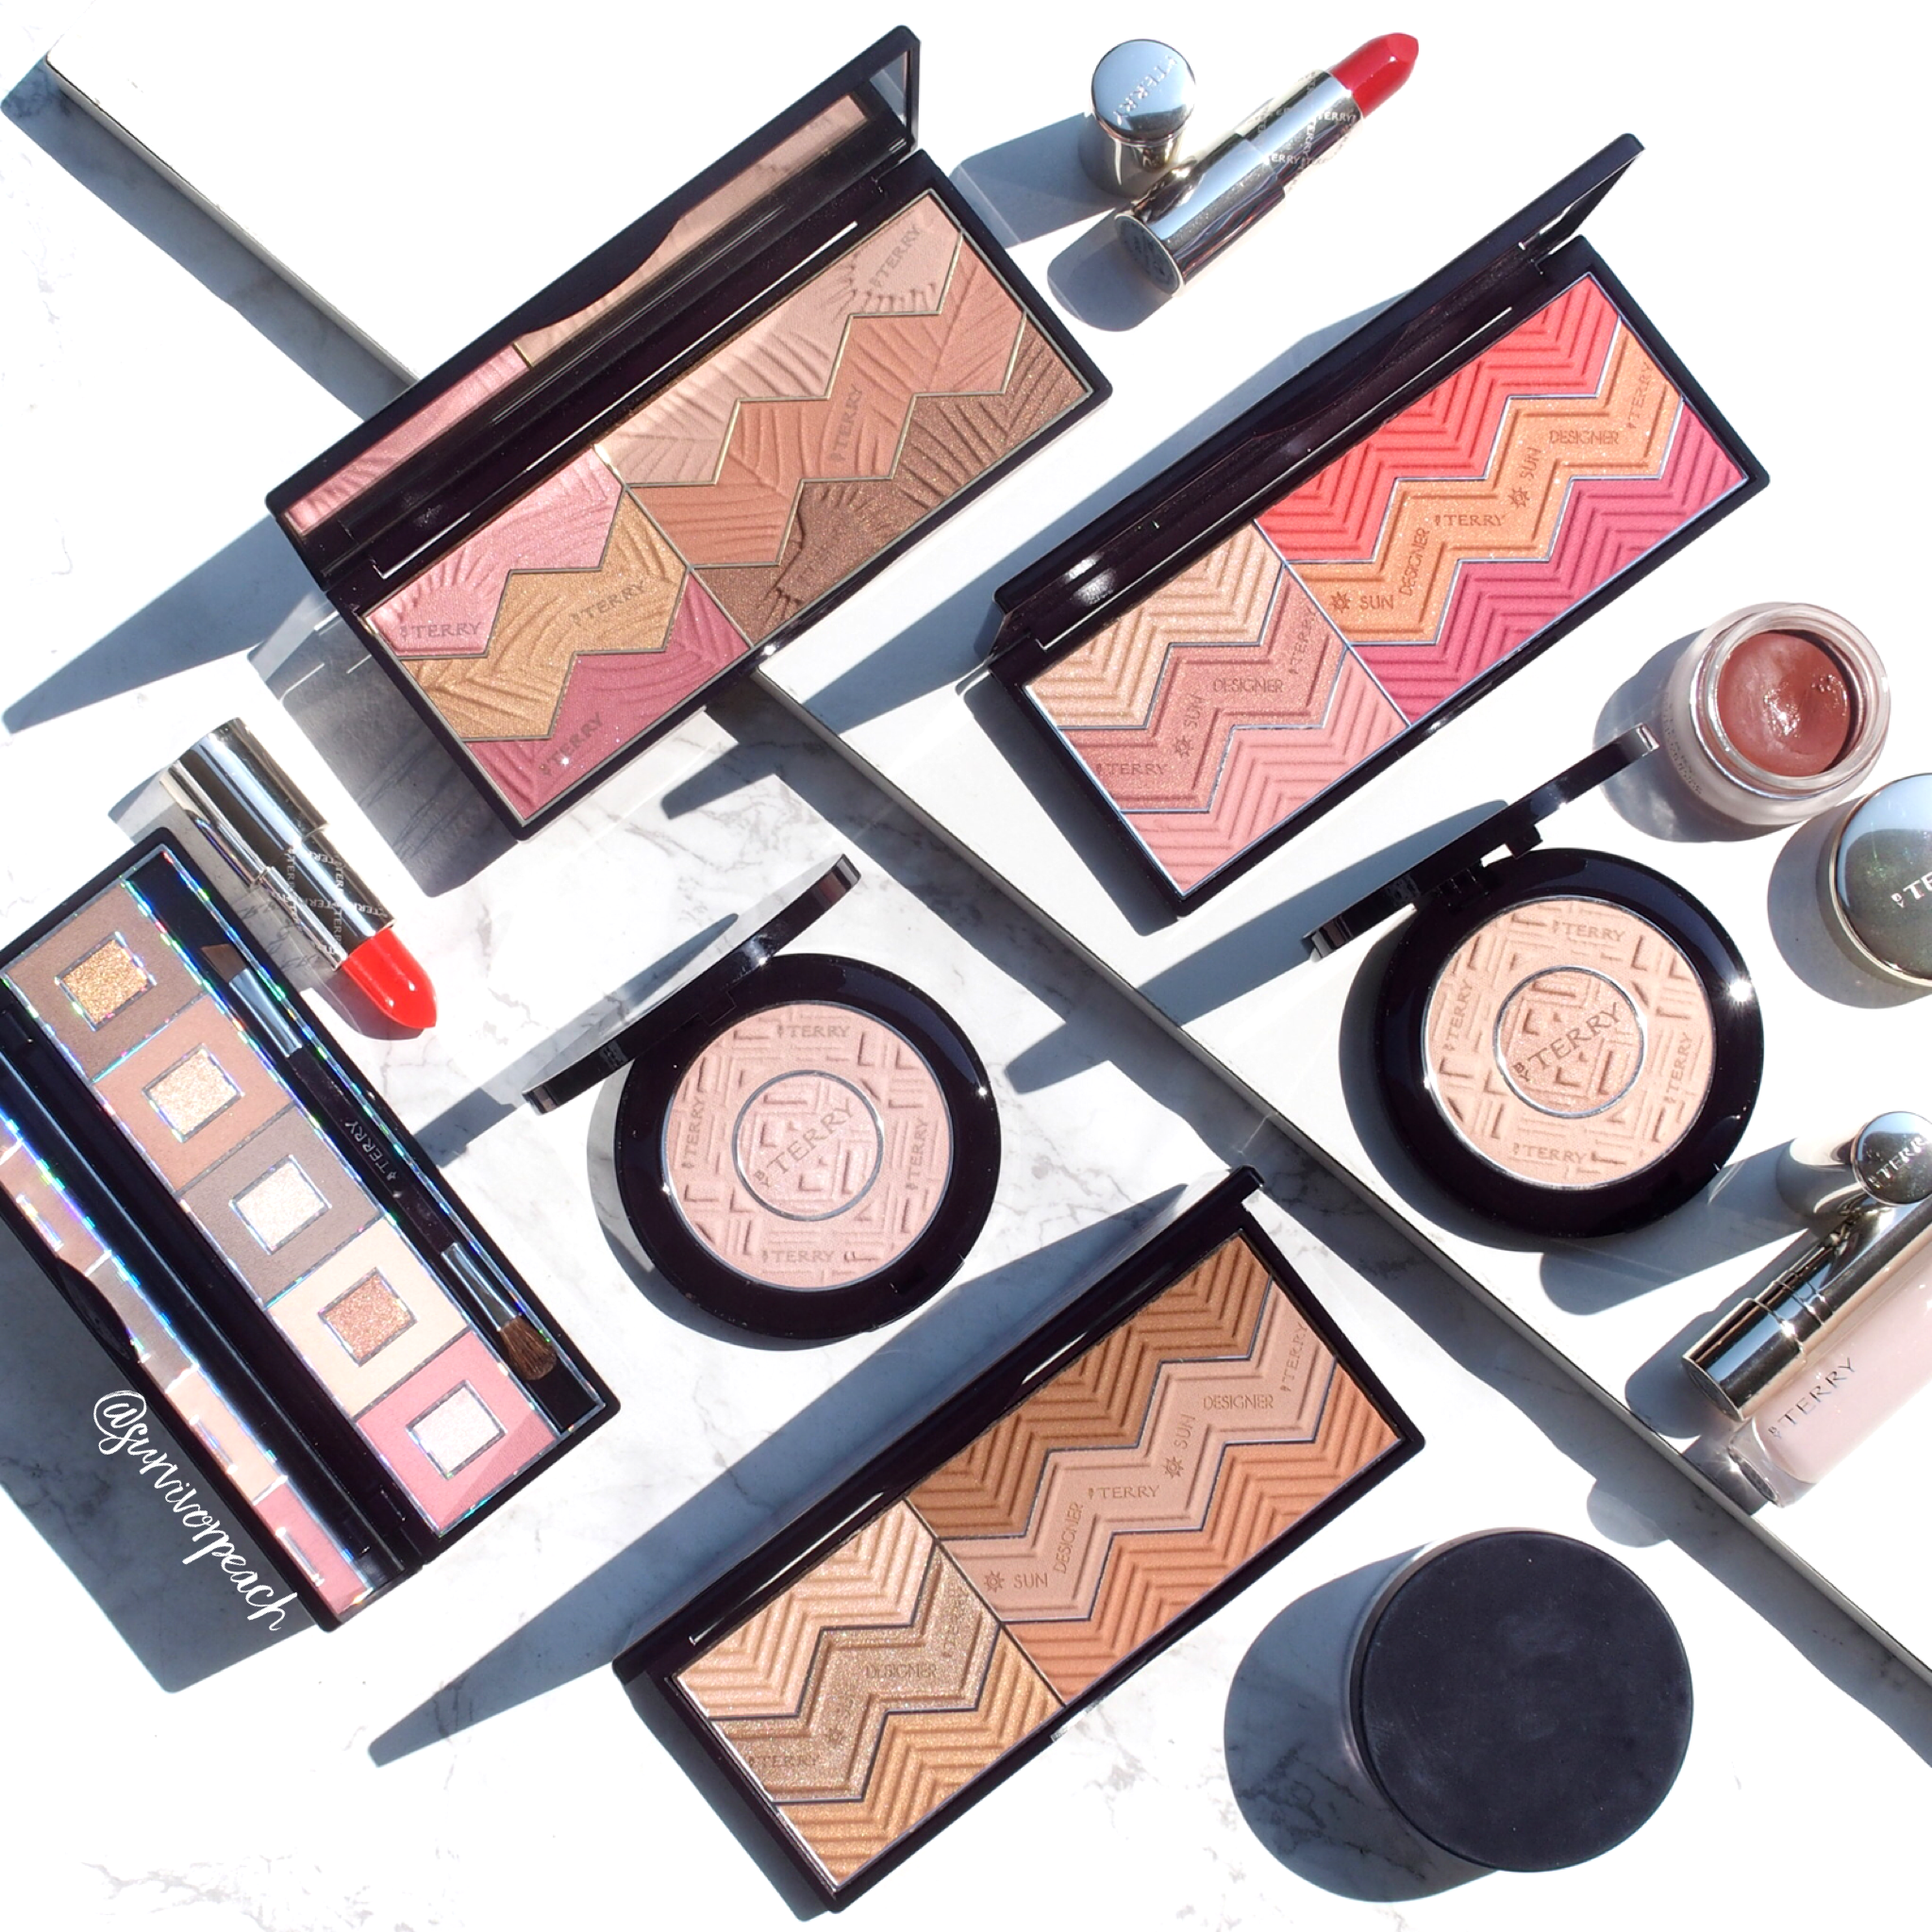 My By Terry makeup collection